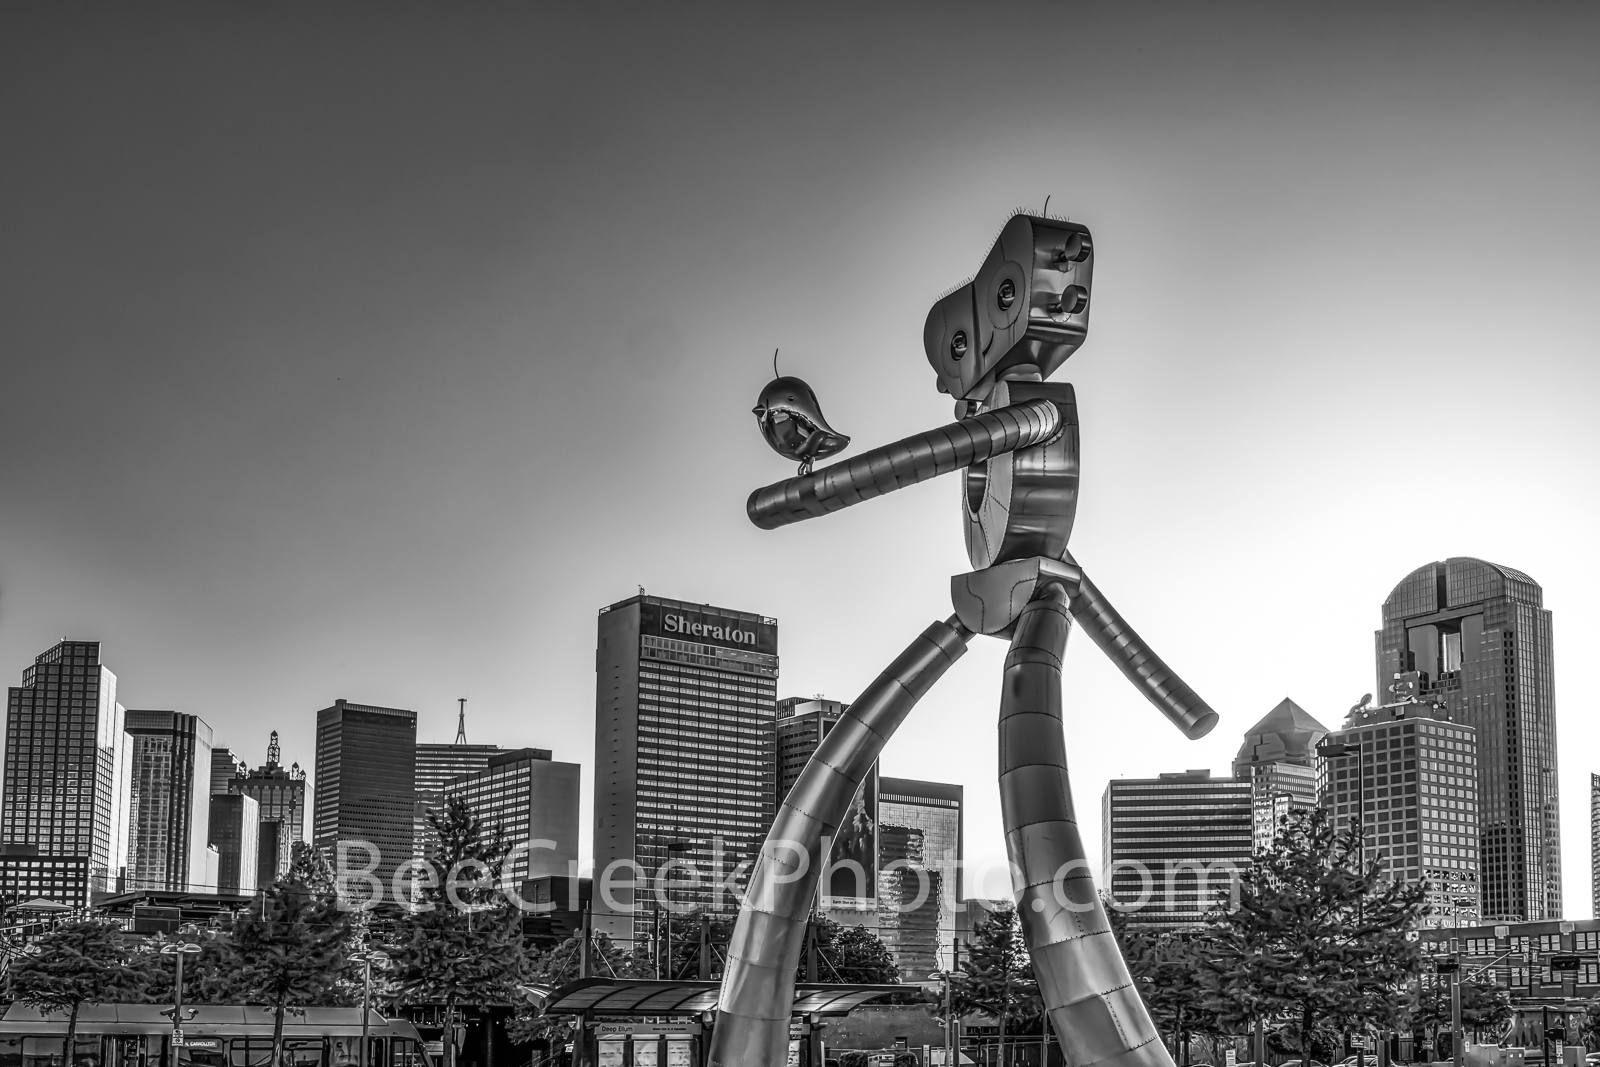 Dallas, Traveling Man, skyline, skylines, downtown, train, train station, mass transit,night,  east dallas, downtown dallas, polished metal, rivets, railroad, black and white, tranist,, photo